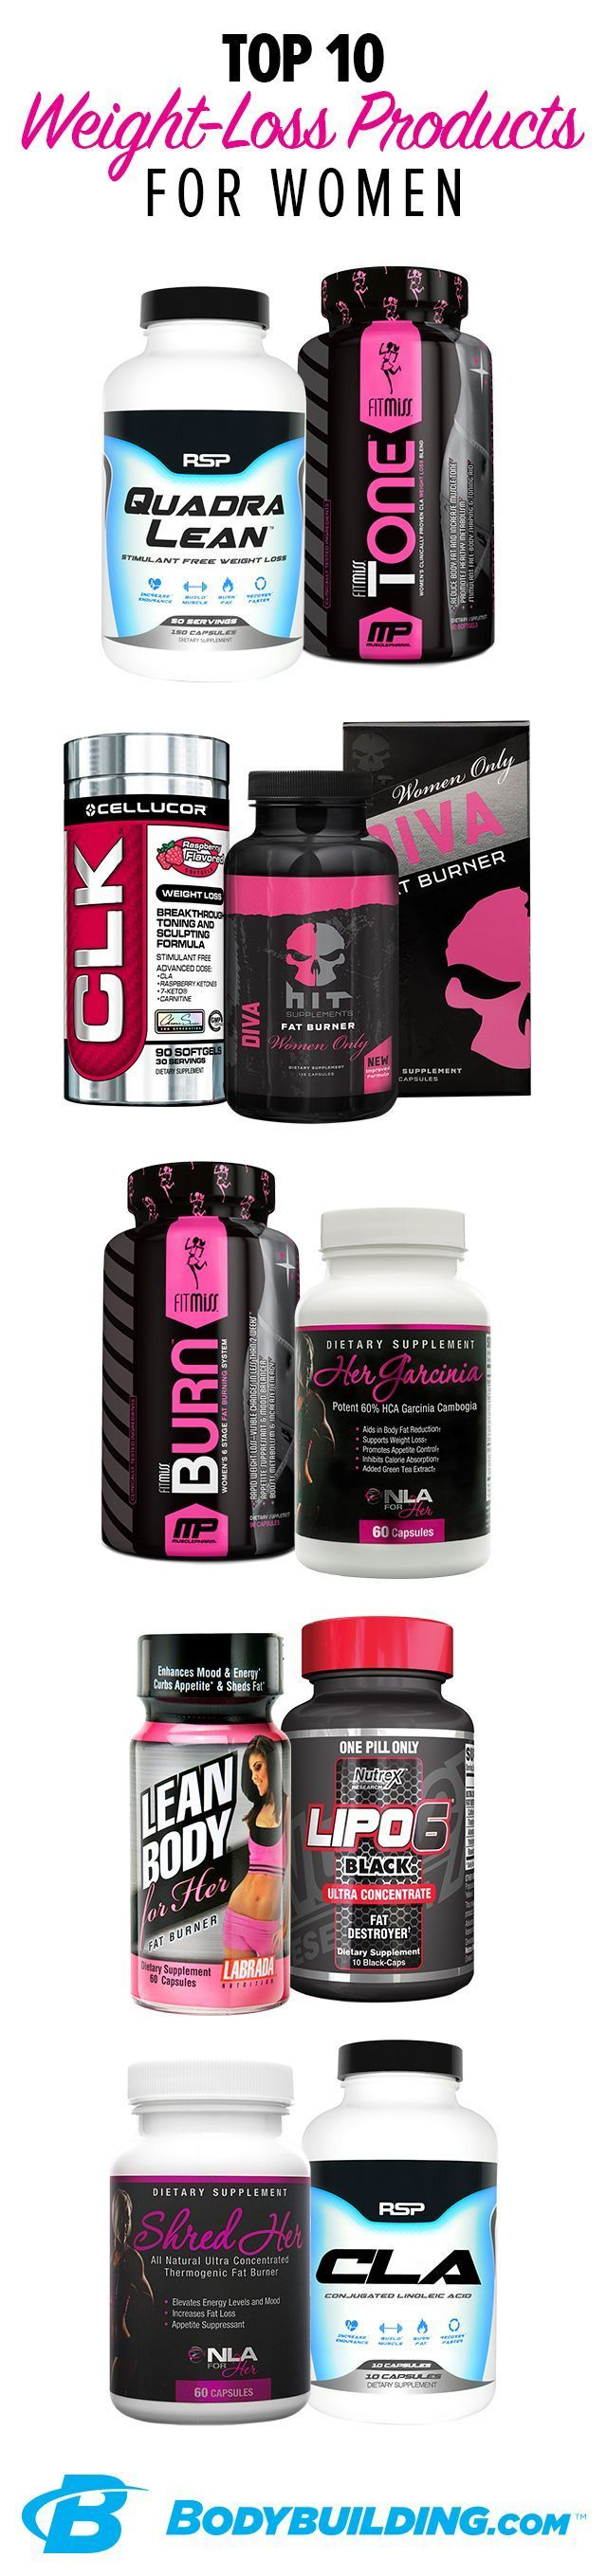 tea for weight loss, food to lose weight, weight loss detox - Ladies! There's 25% off Protein @ Bodybuilding dot com! Use my link below to get the discount, PLUS Buy 2 FitMiss Tyte Supps and get 1 FREE! I love a good sale! bodybuilding.7eer...